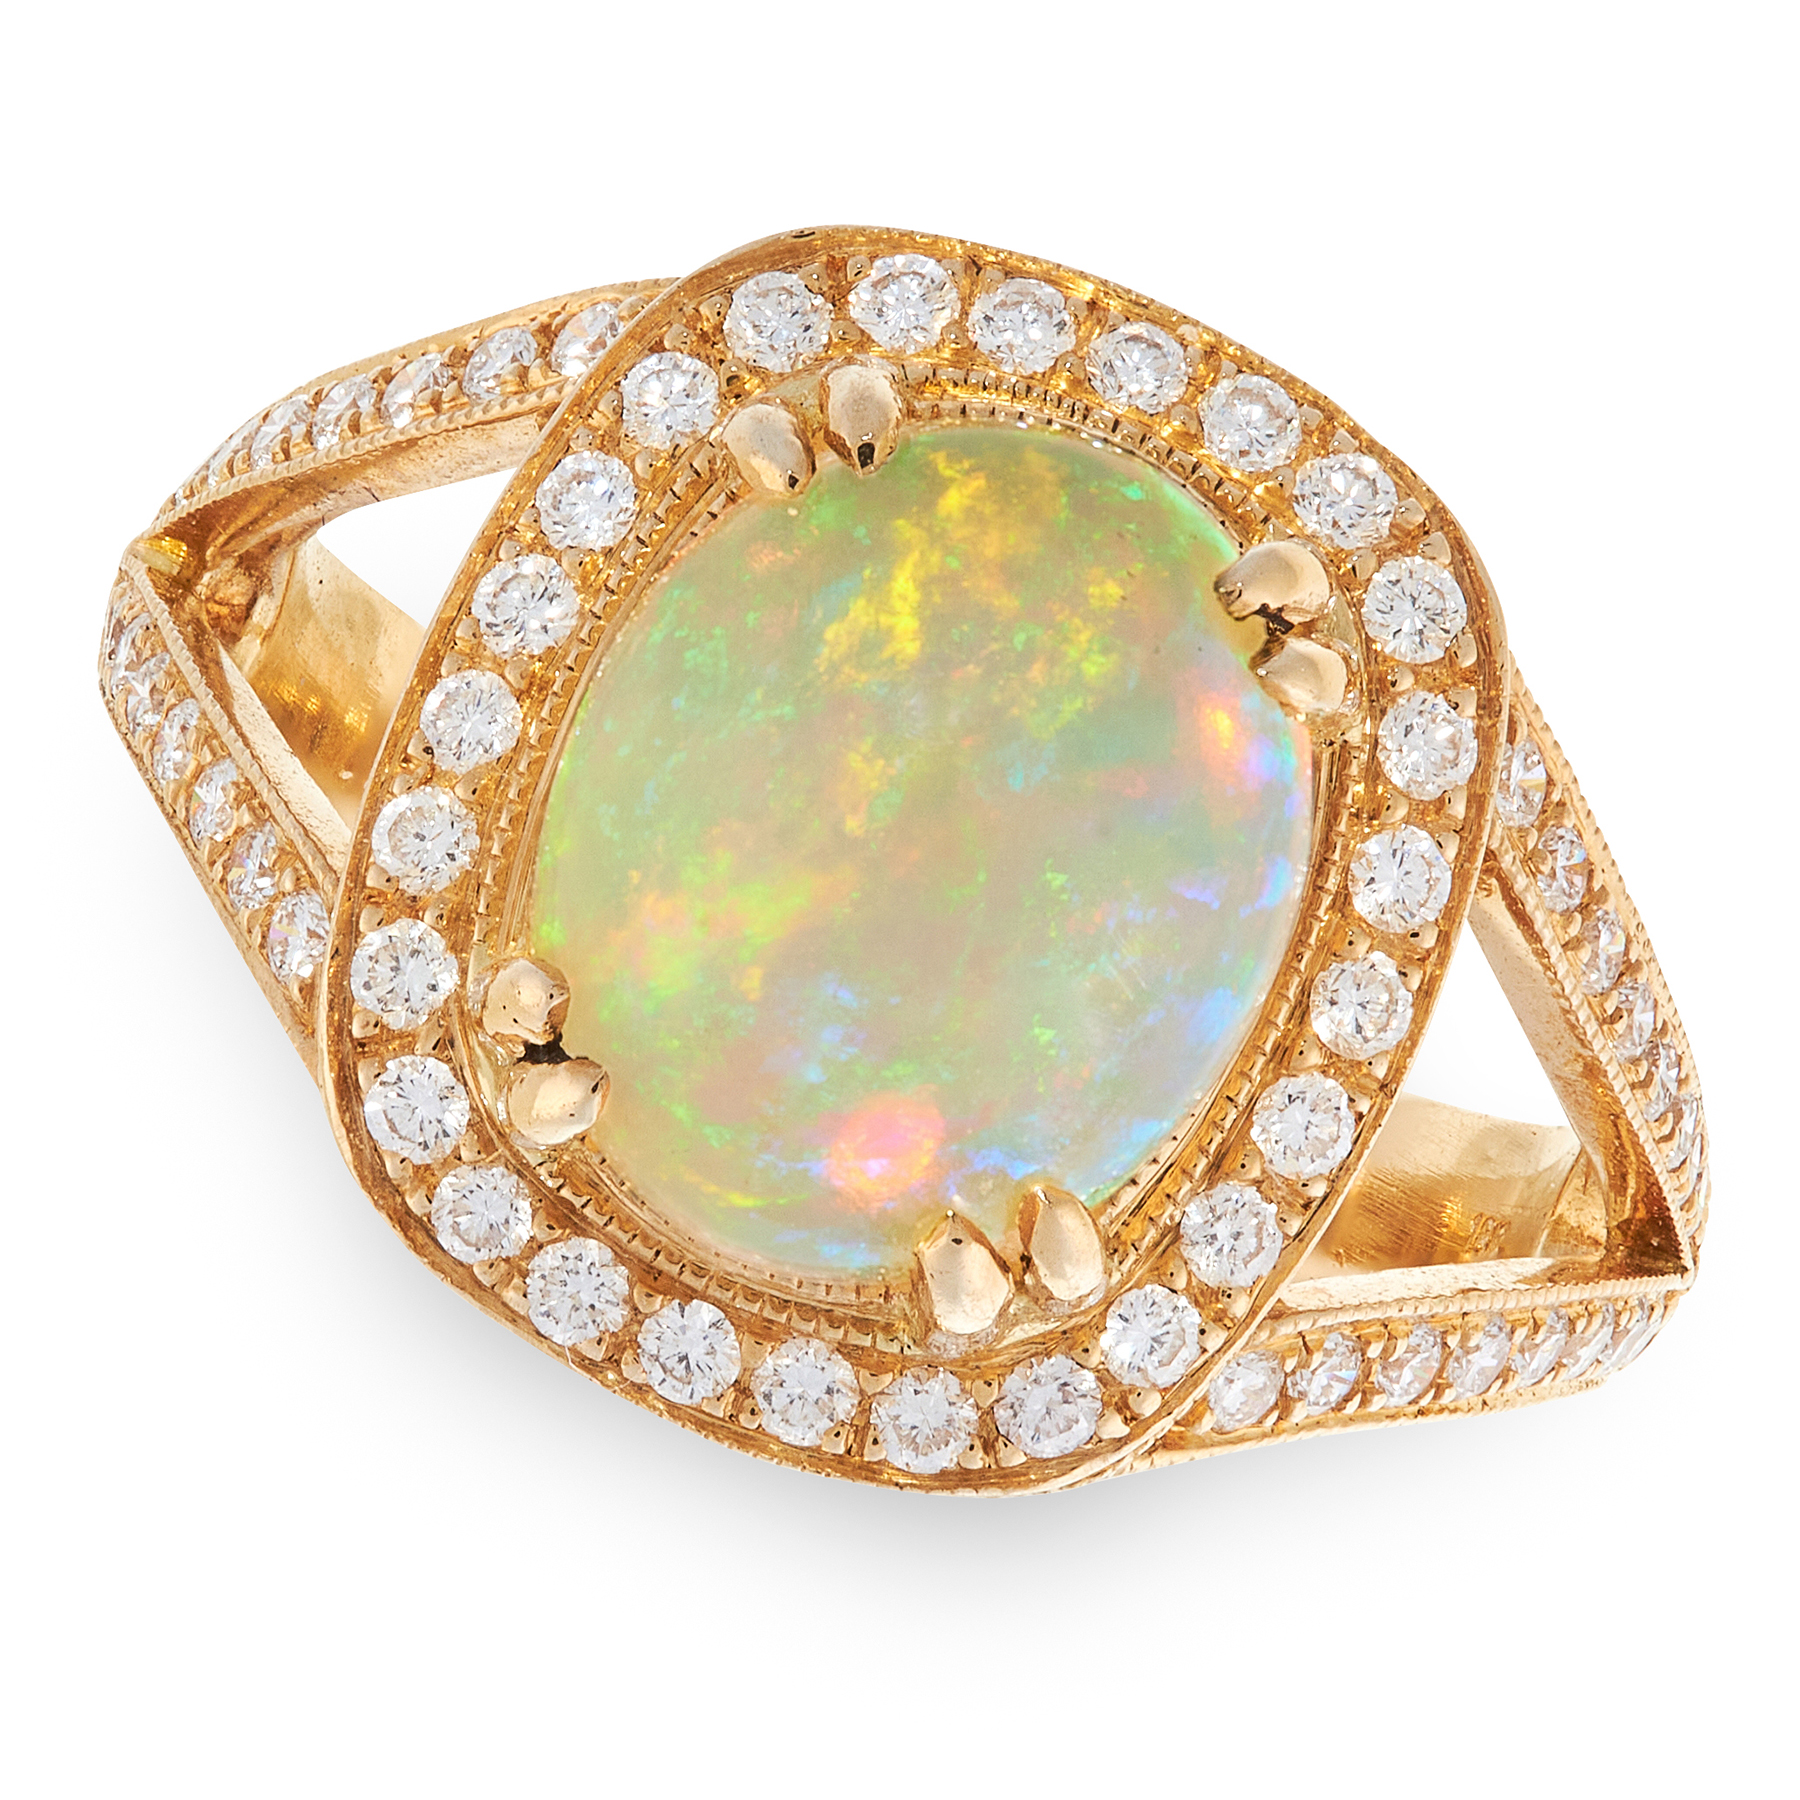 AN OPAL AND DIAMOND DRESS RING in 18ct yellow gold, set with an oval cabochon opal of 2.86 carats